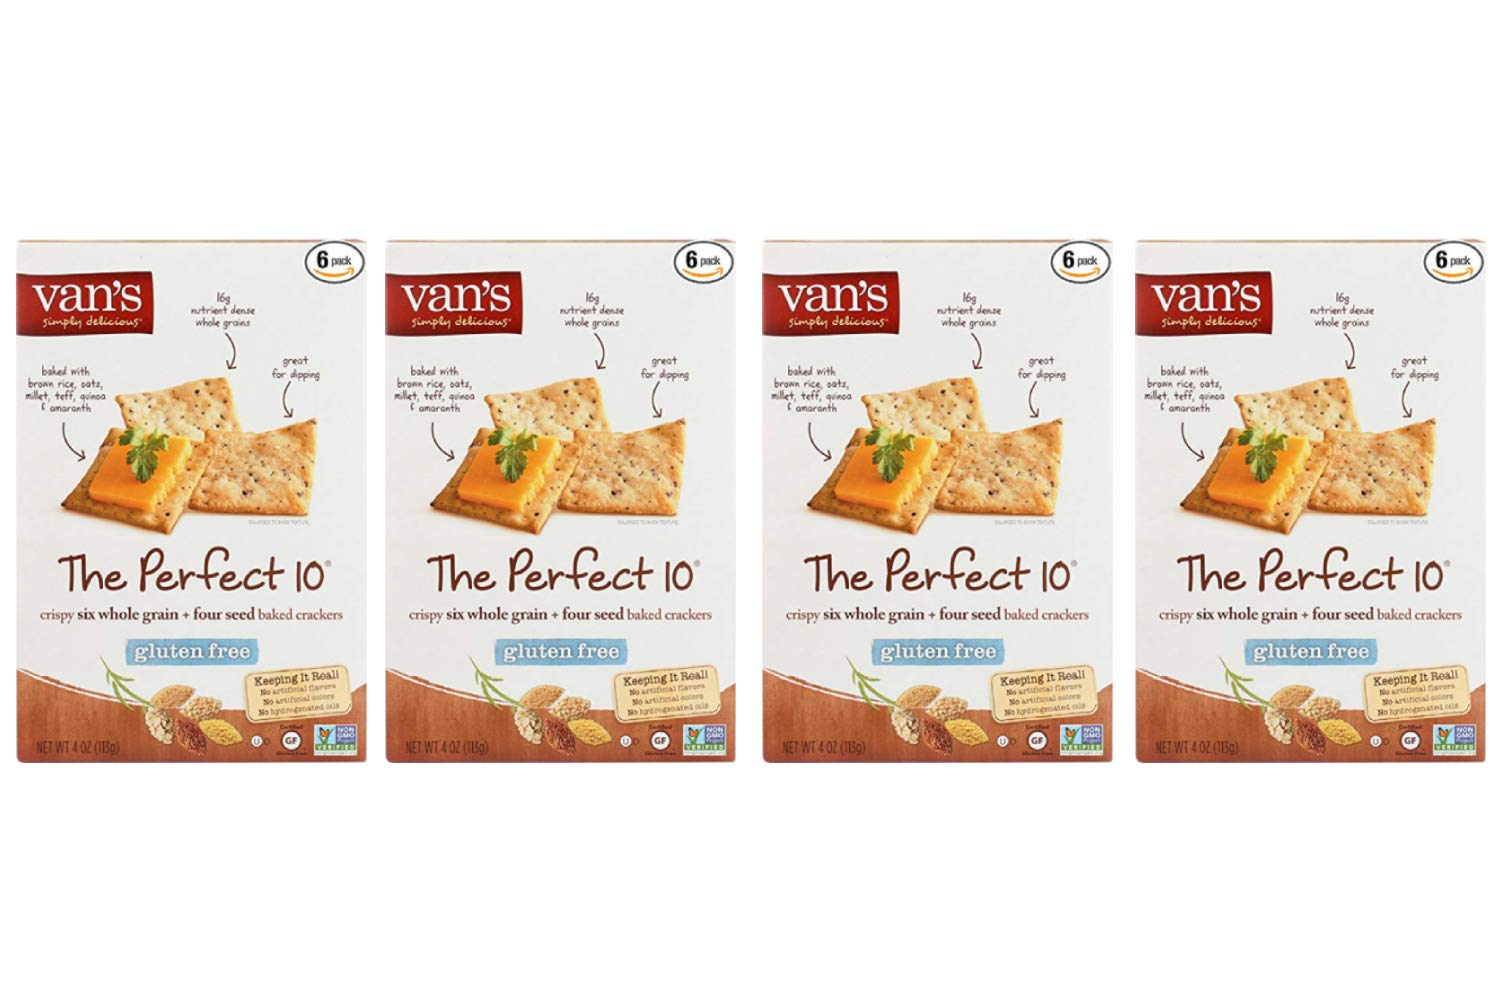 Vans Natural Foods The Perfect 10 Gluten Free Crackers, 4 Ounce - 6 Count per Pack (4 Pack)